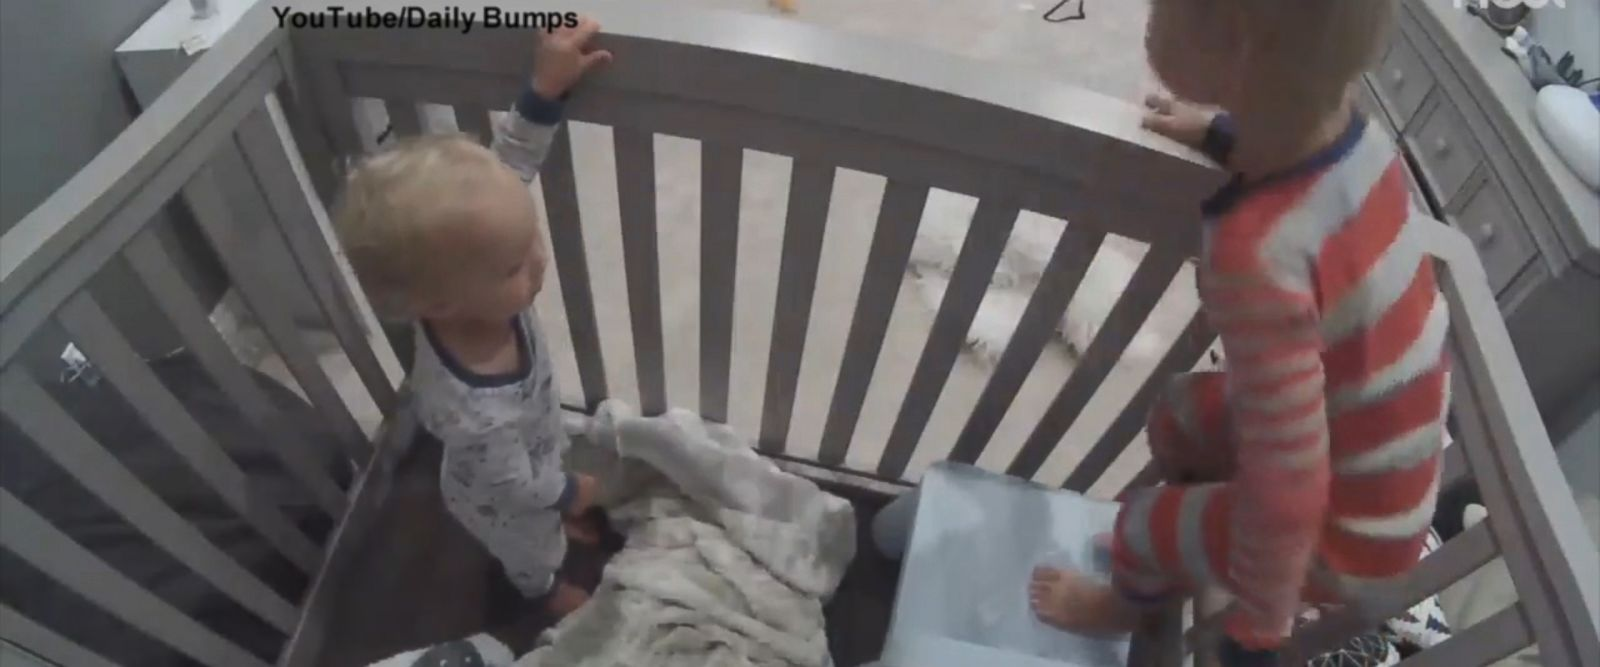 VIDEO: Brother helps toddler escape from crib: You can do it. Finn, jump to me!